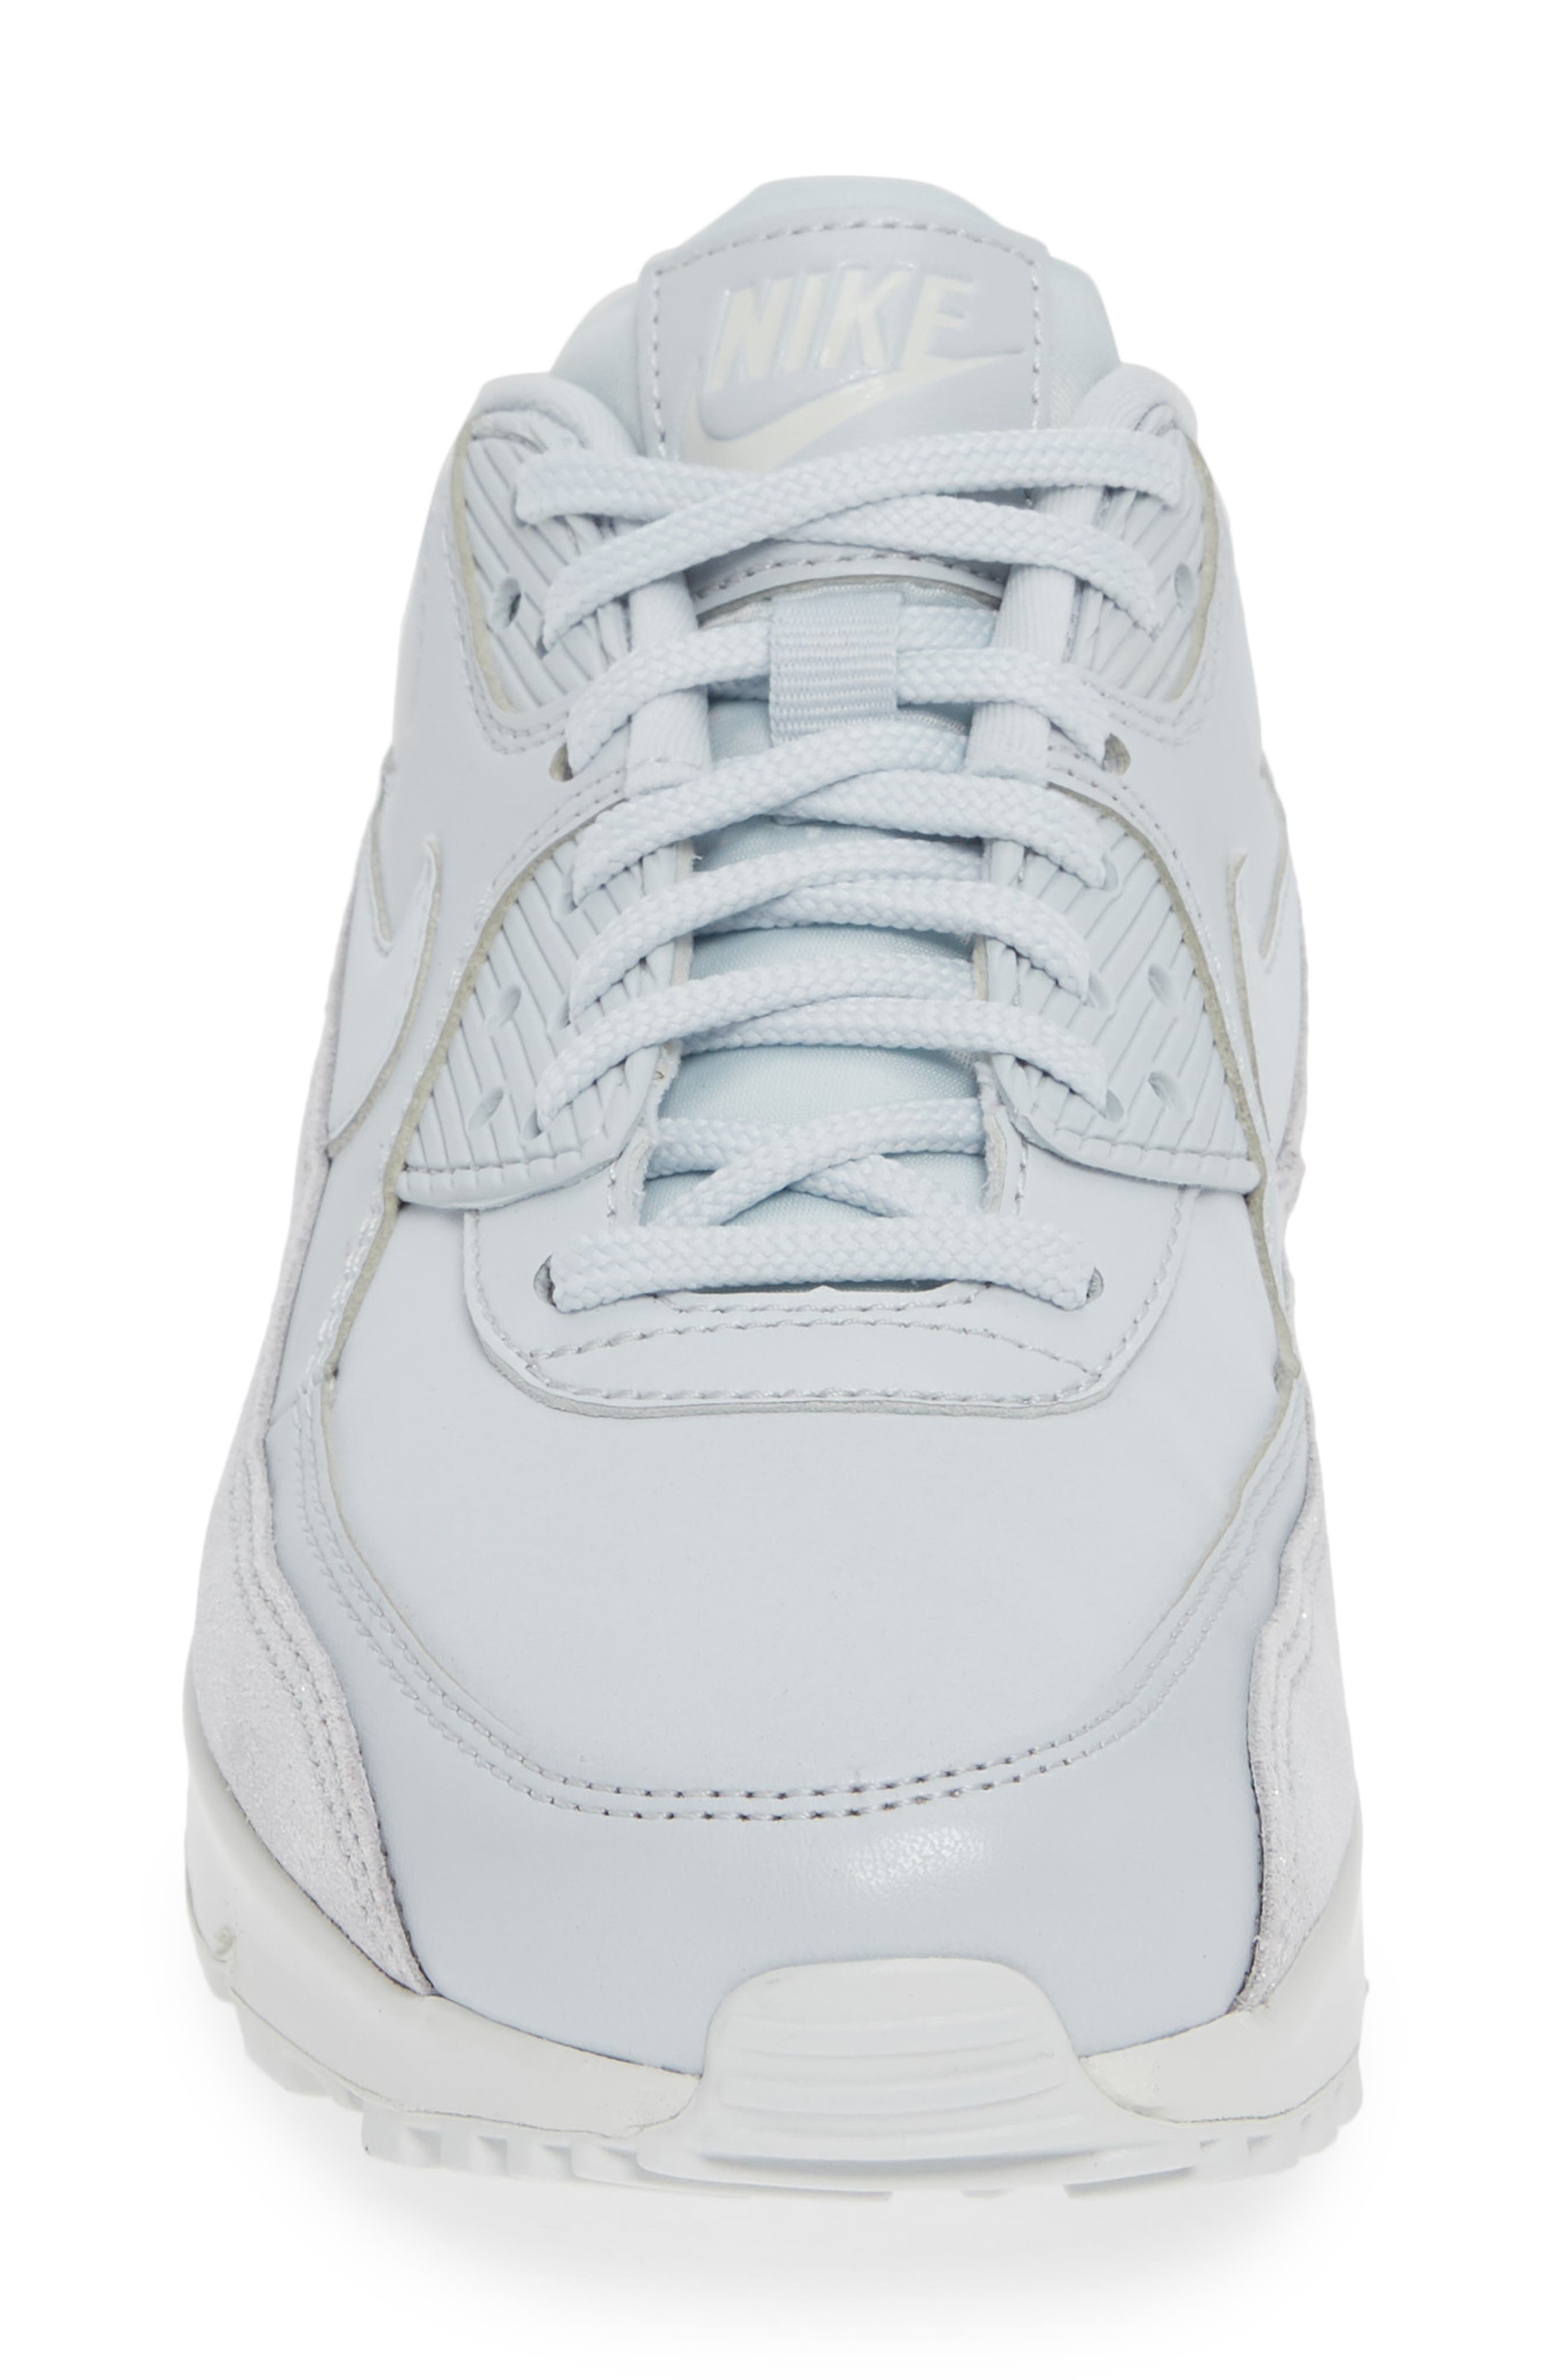 Air Max 90 SE Sneaker,                             Alternate thumbnail 4, color,                             PURE PLATINUM/ PLATINUM- WHITE